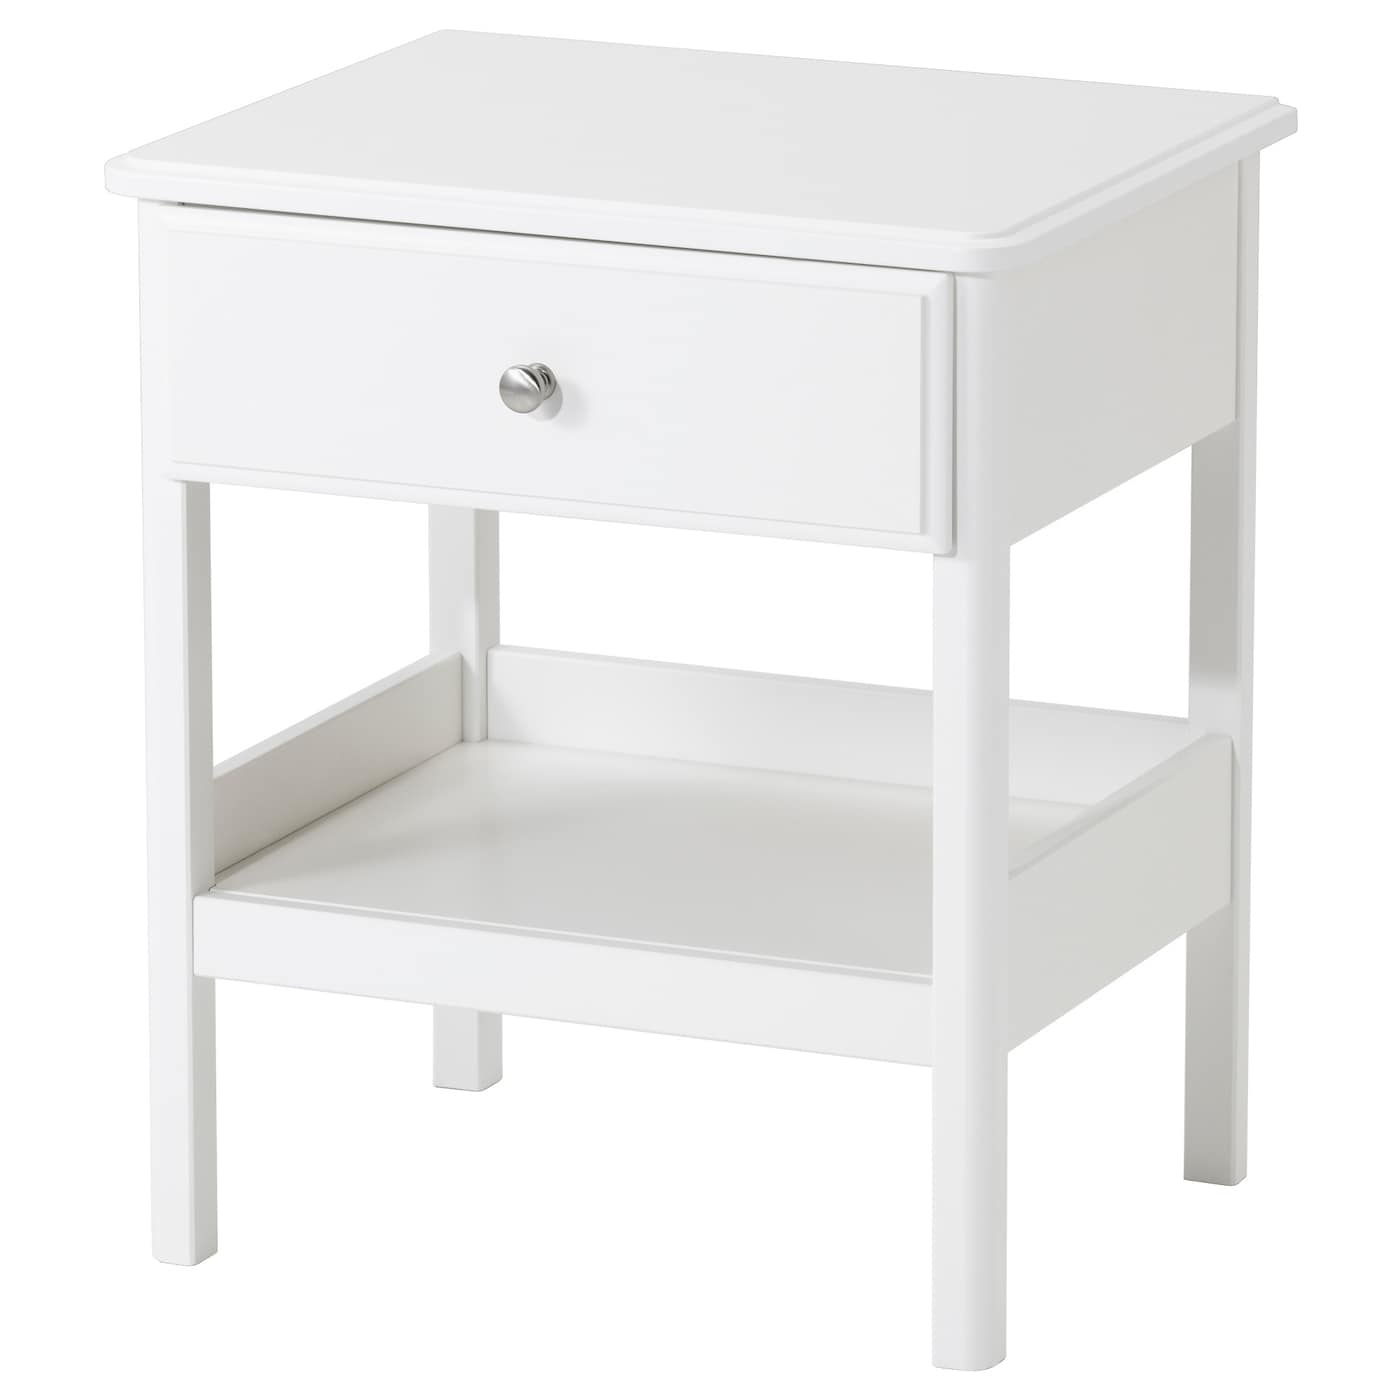 TYSSEDAL Table chevet Blanc 51×40 cm IKEA